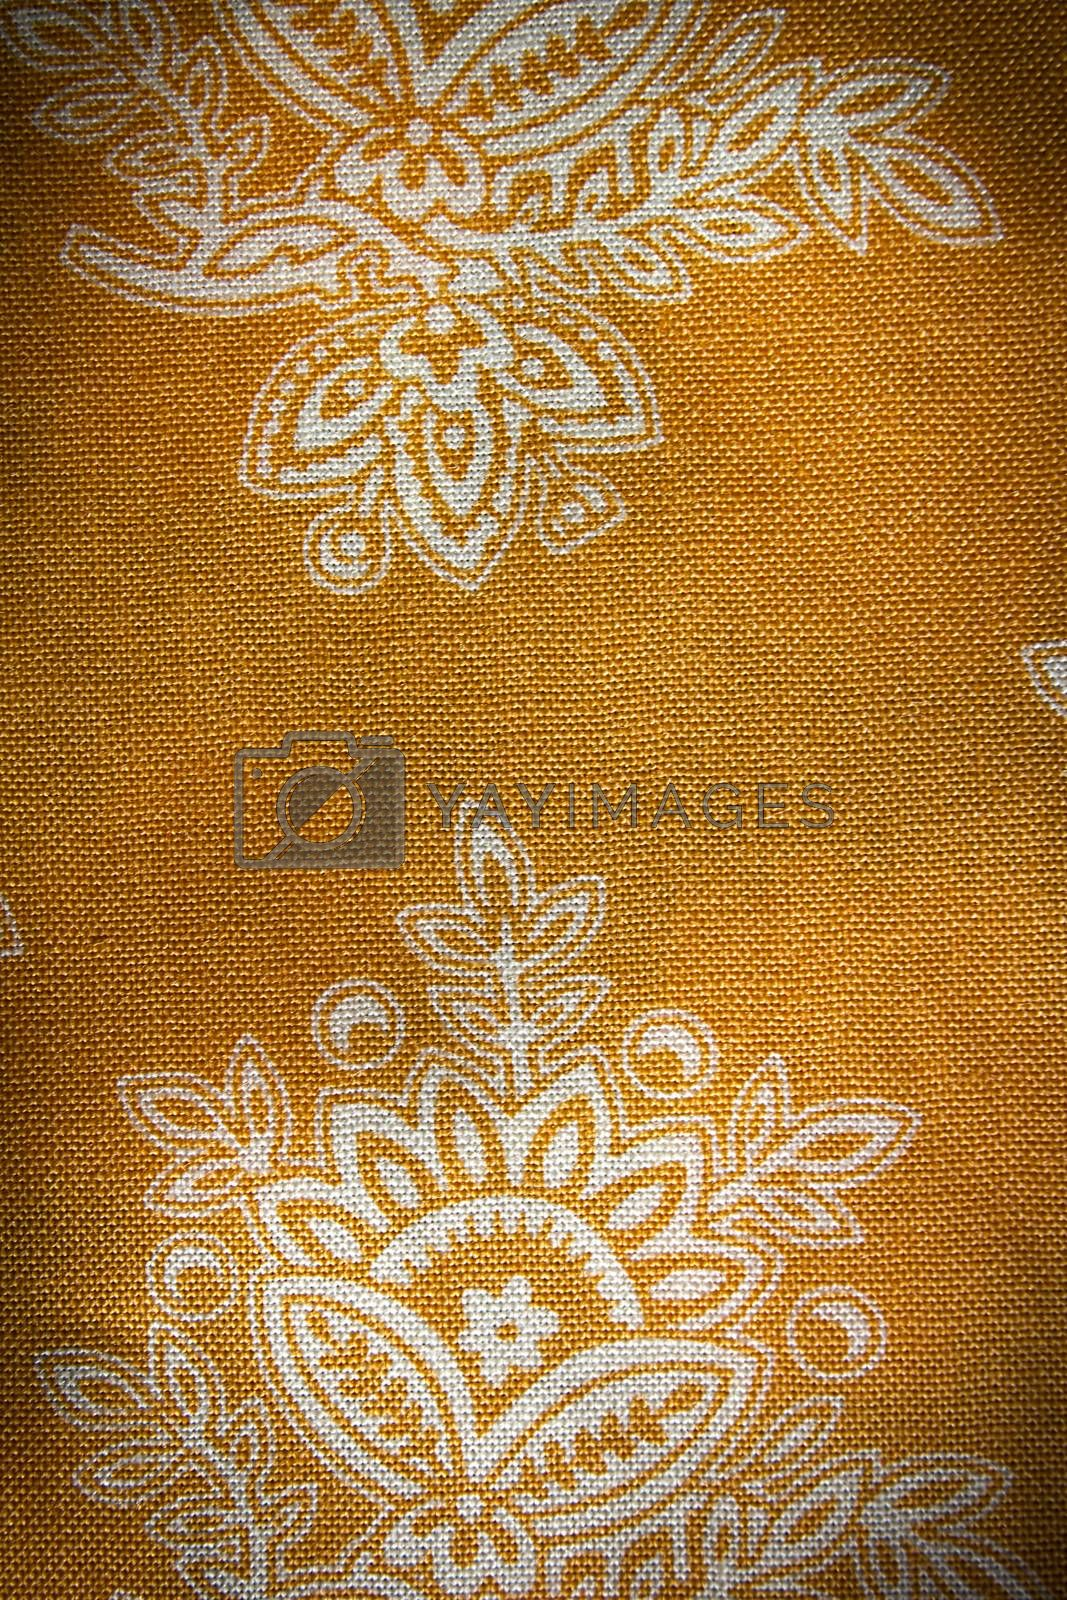 Floral wallpaper texture background, high detail fabric